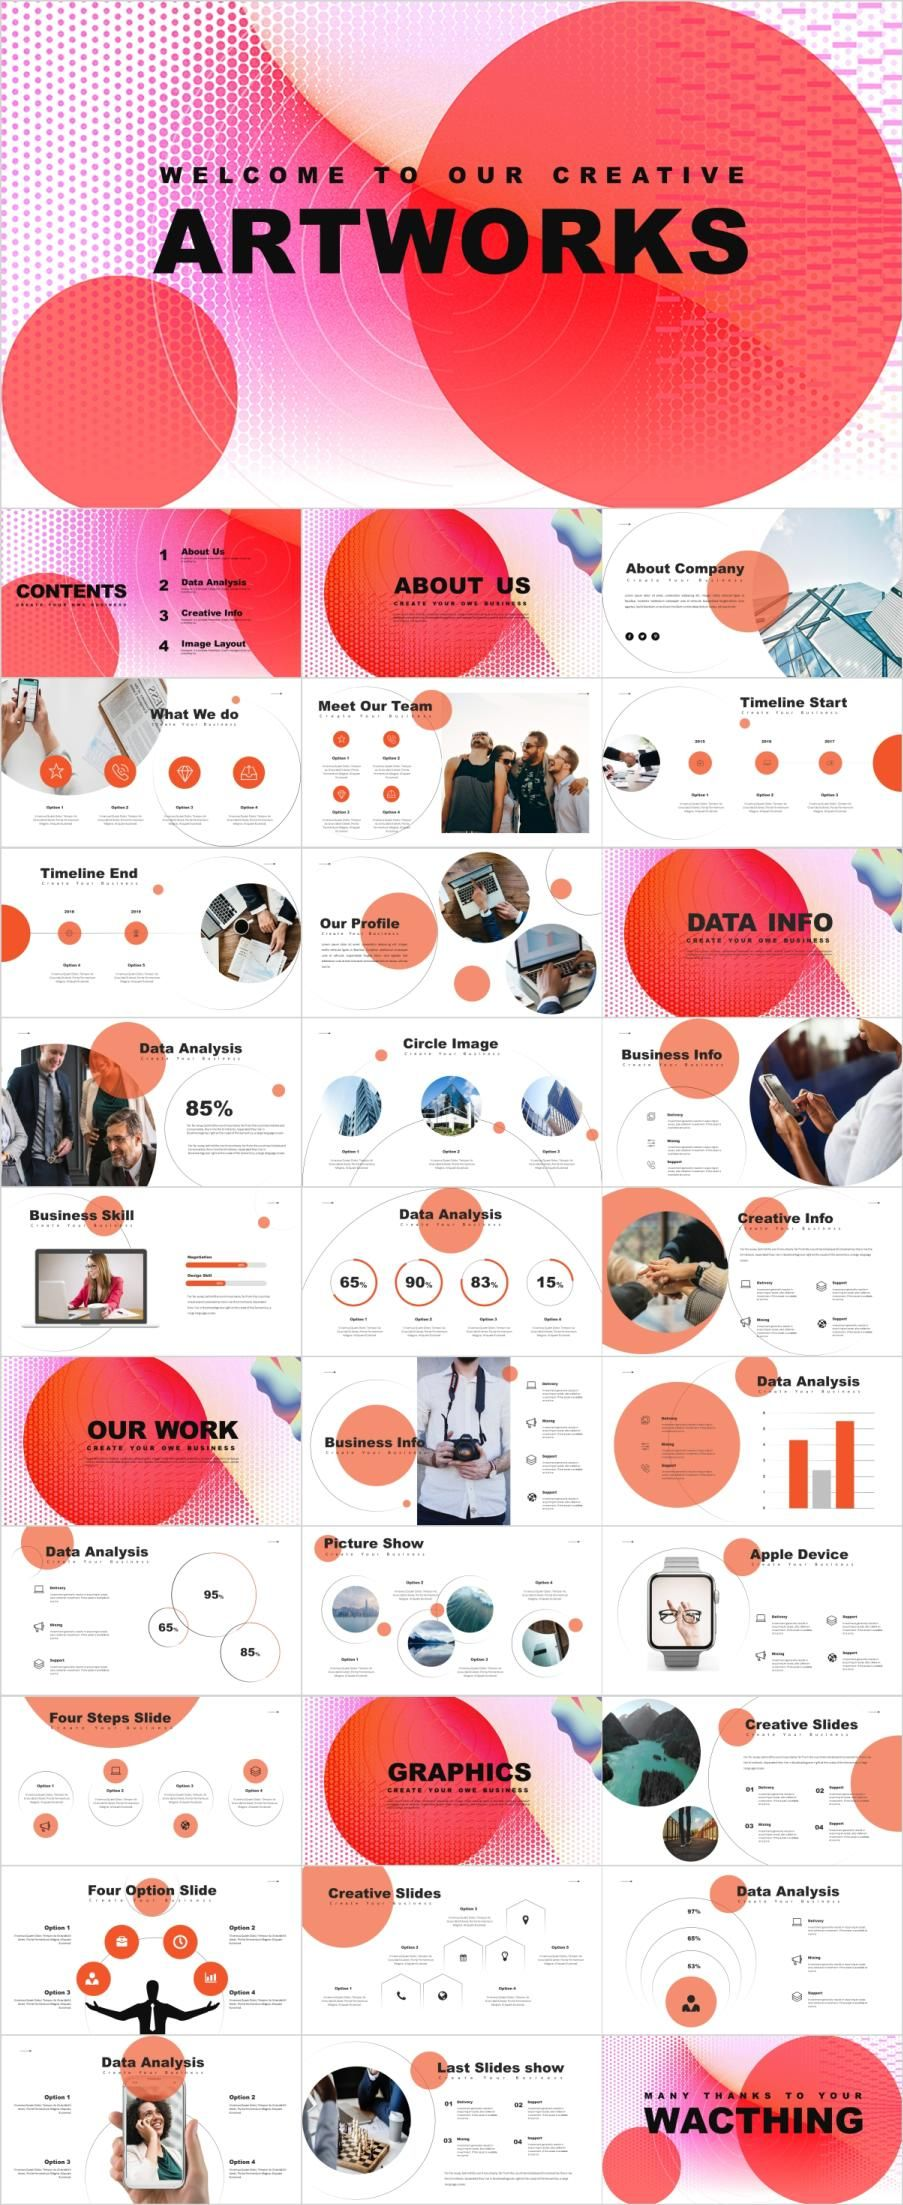 30 Market Analysis PowerPoint Template Powerpoint Templates Presentation Animation Backgrounds Pptwork Annual Report Business Company Design